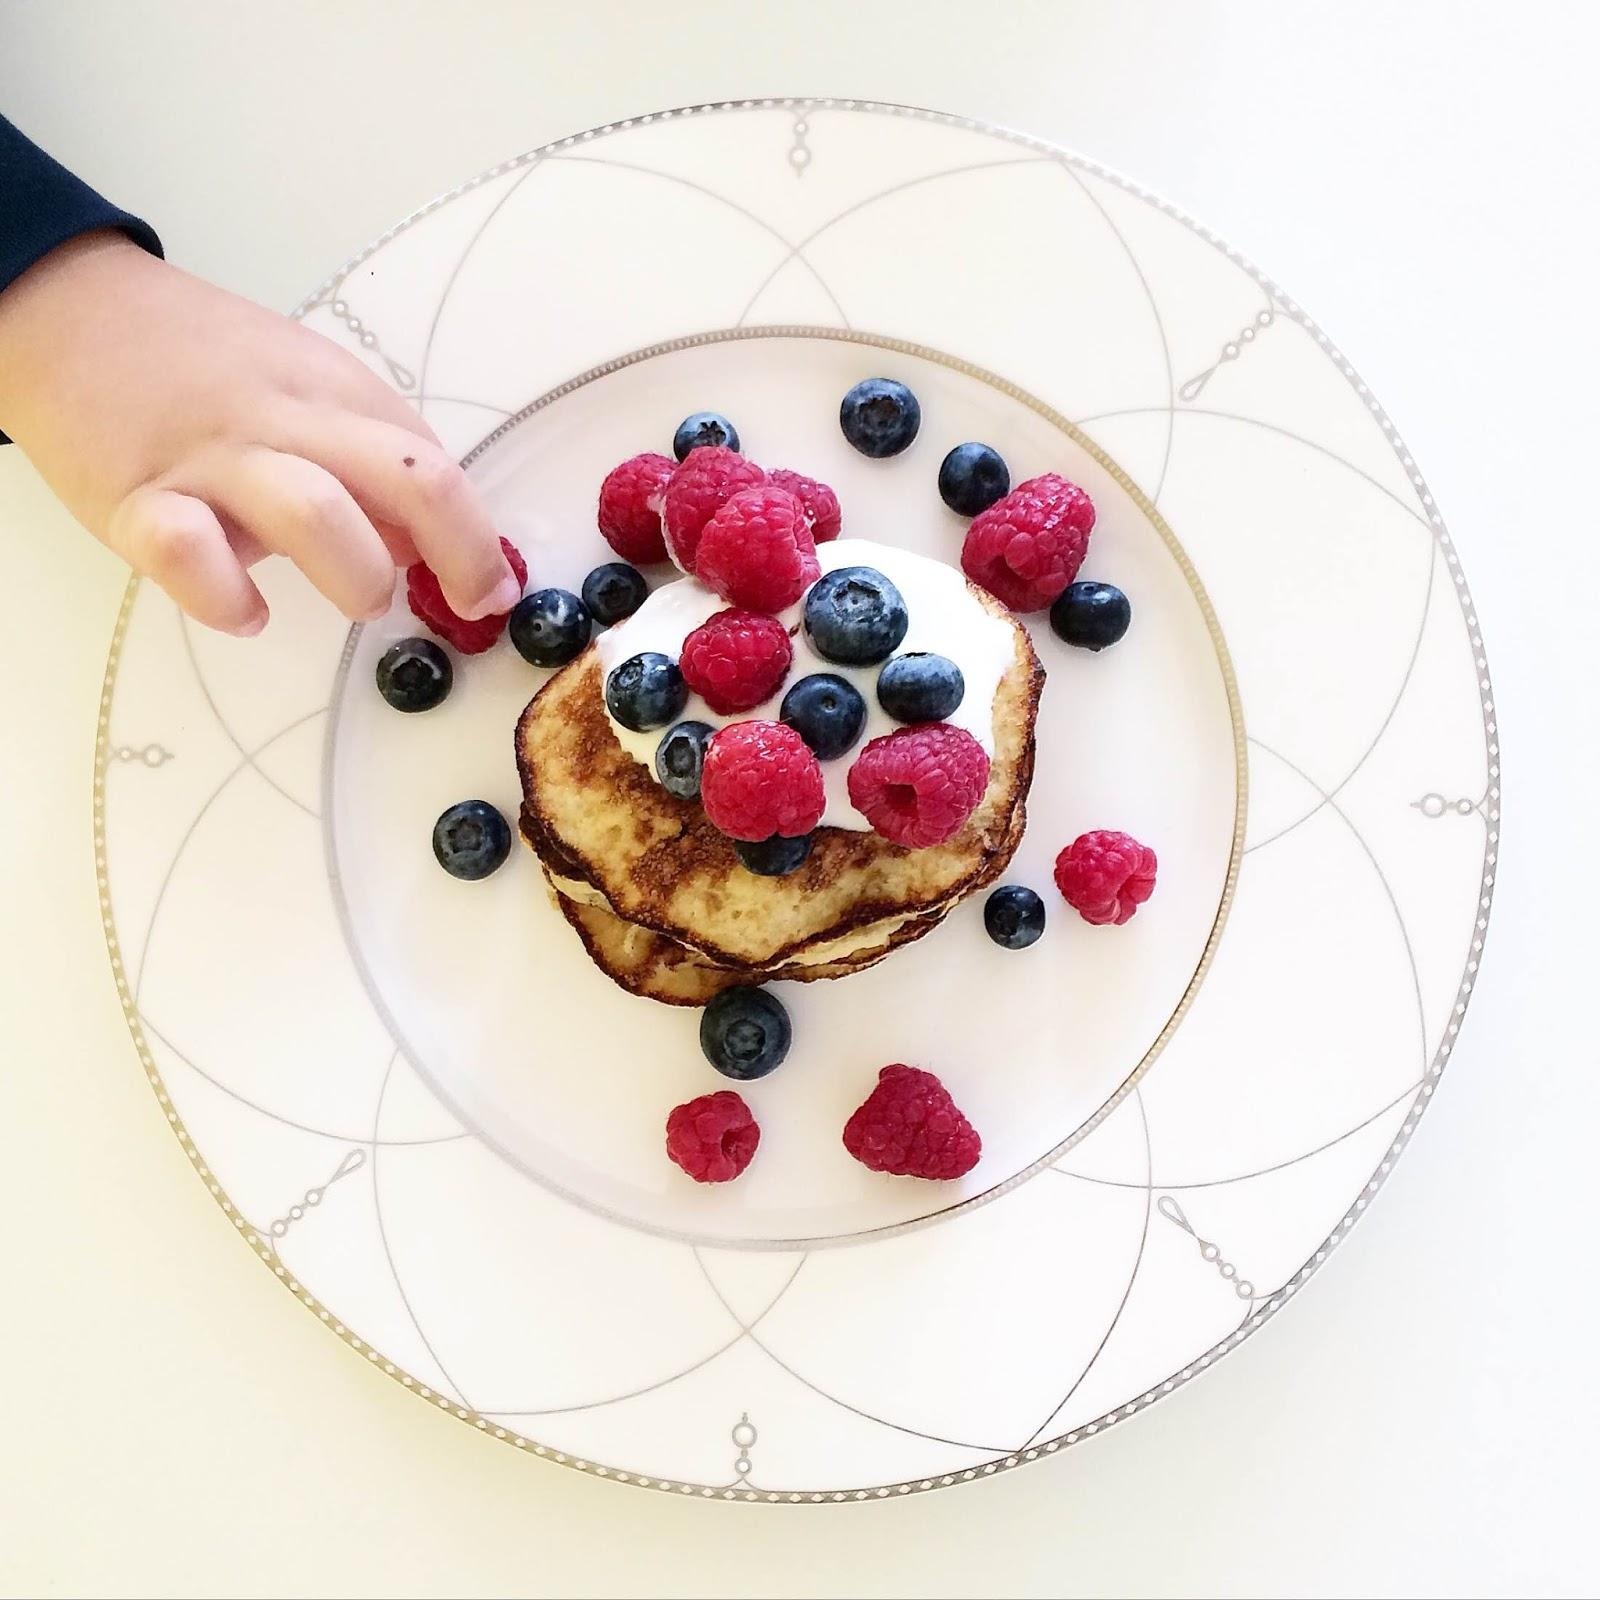 kristjaana mere healthy breakfast banana pancakes raspberries blueberries